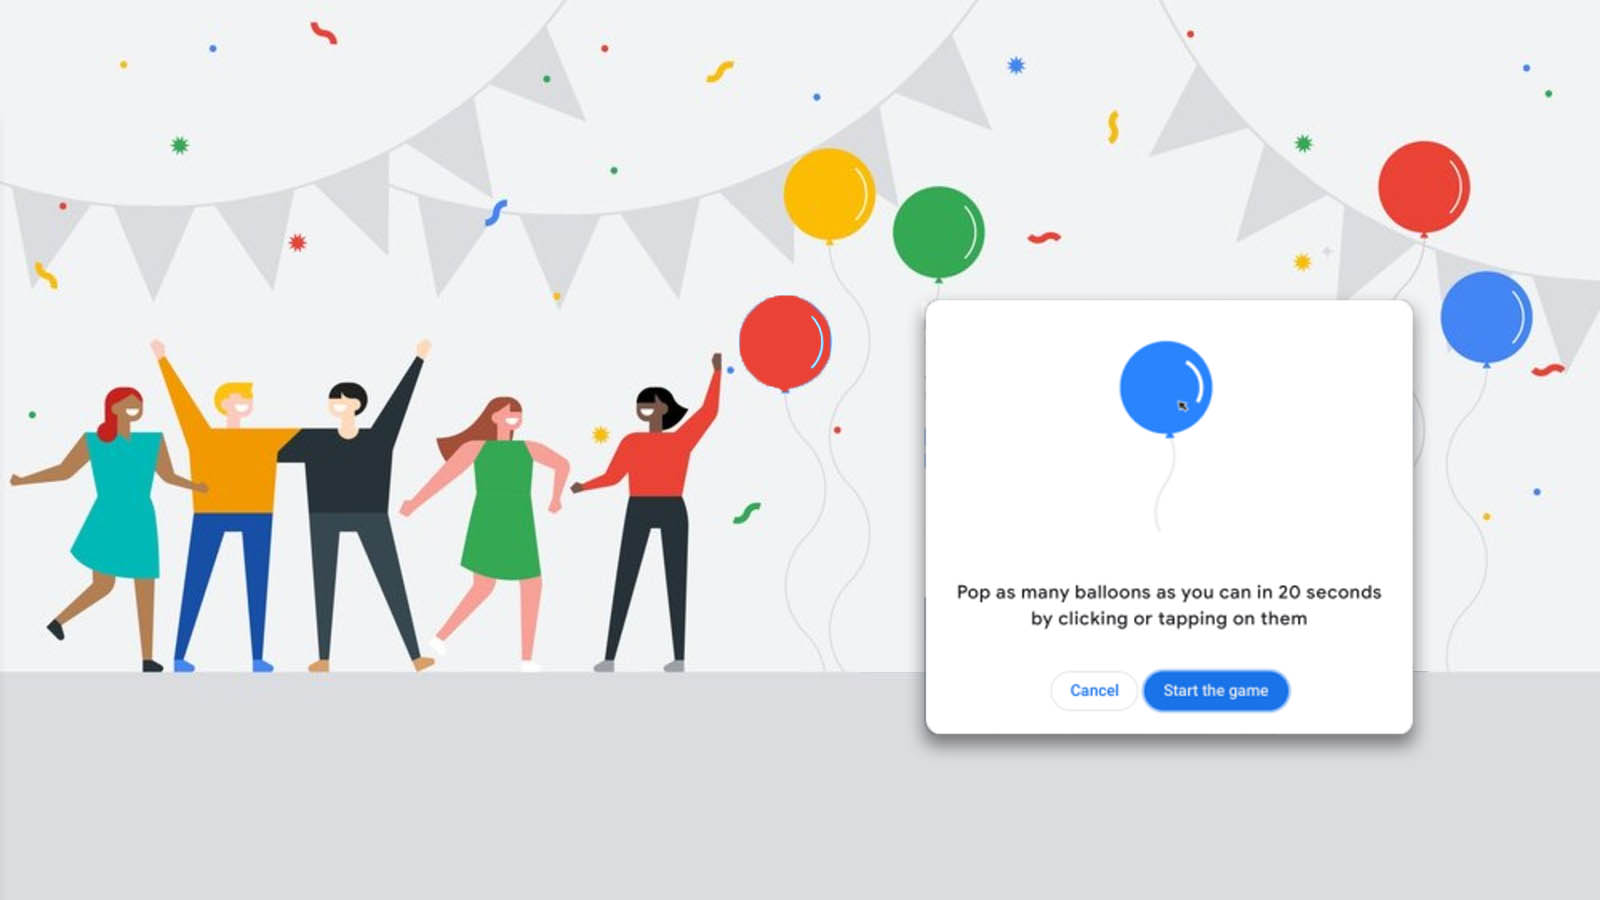 Chromebooks have a secret minigame built-in that celebrates their tenth anniversary